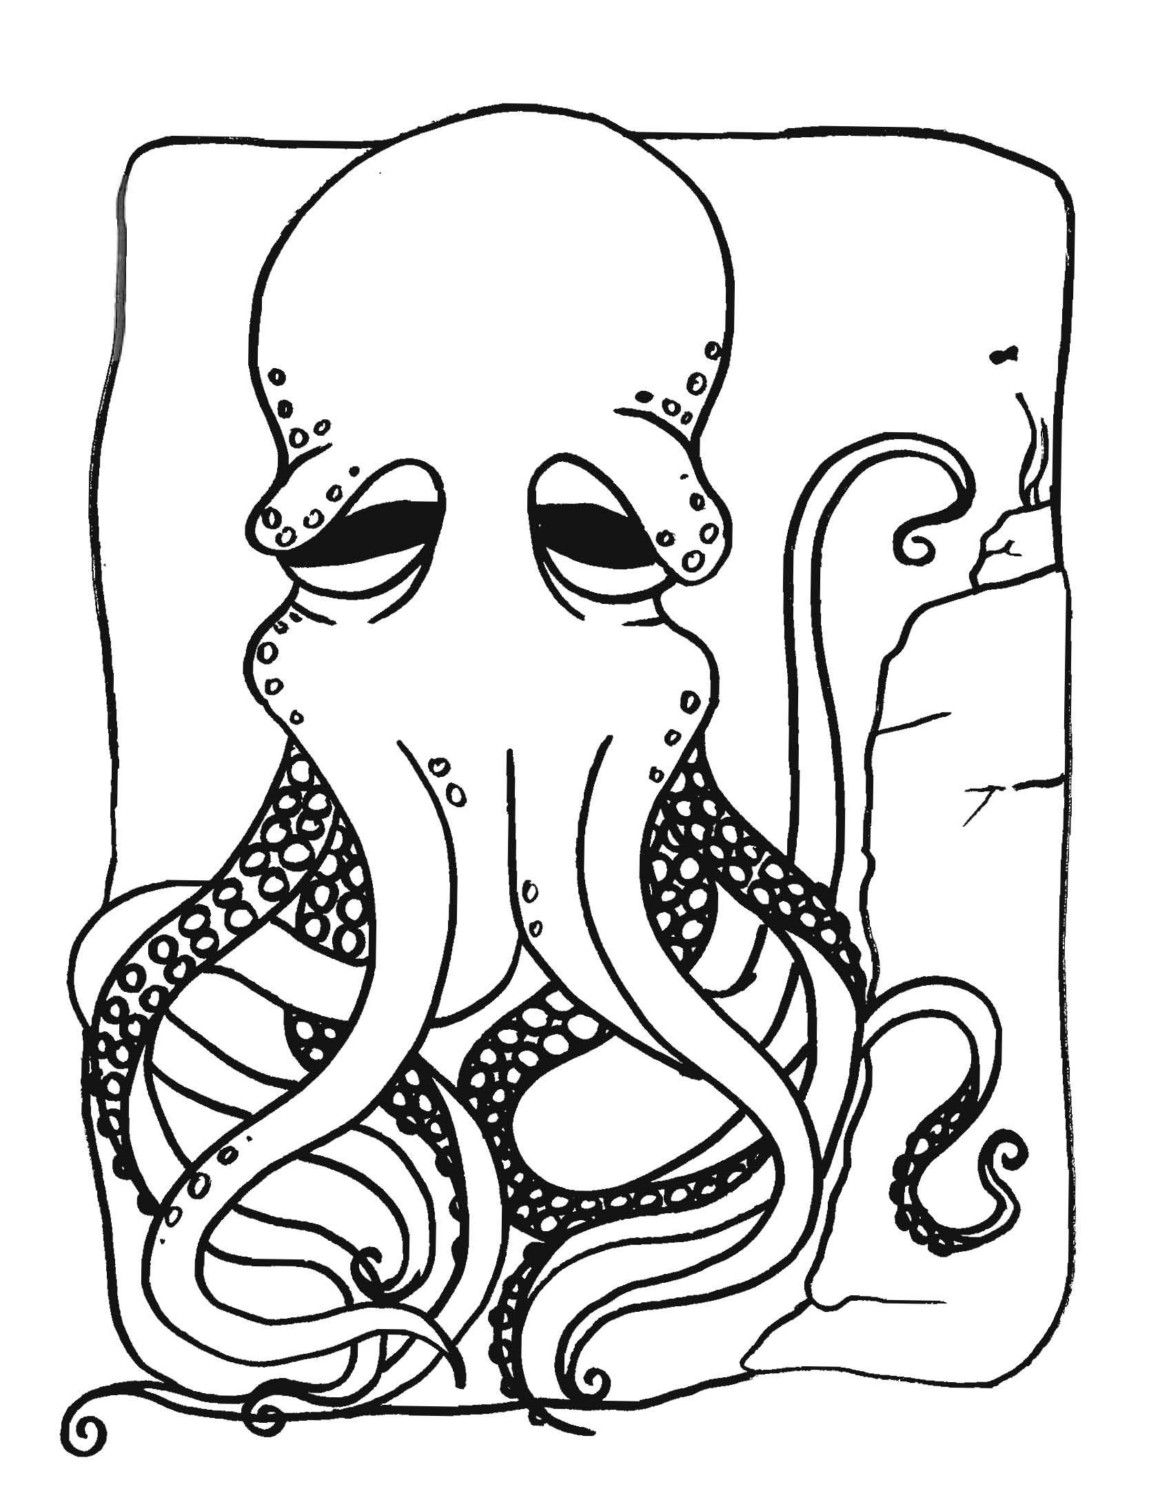 Free Octopus Coloring Pages Printable